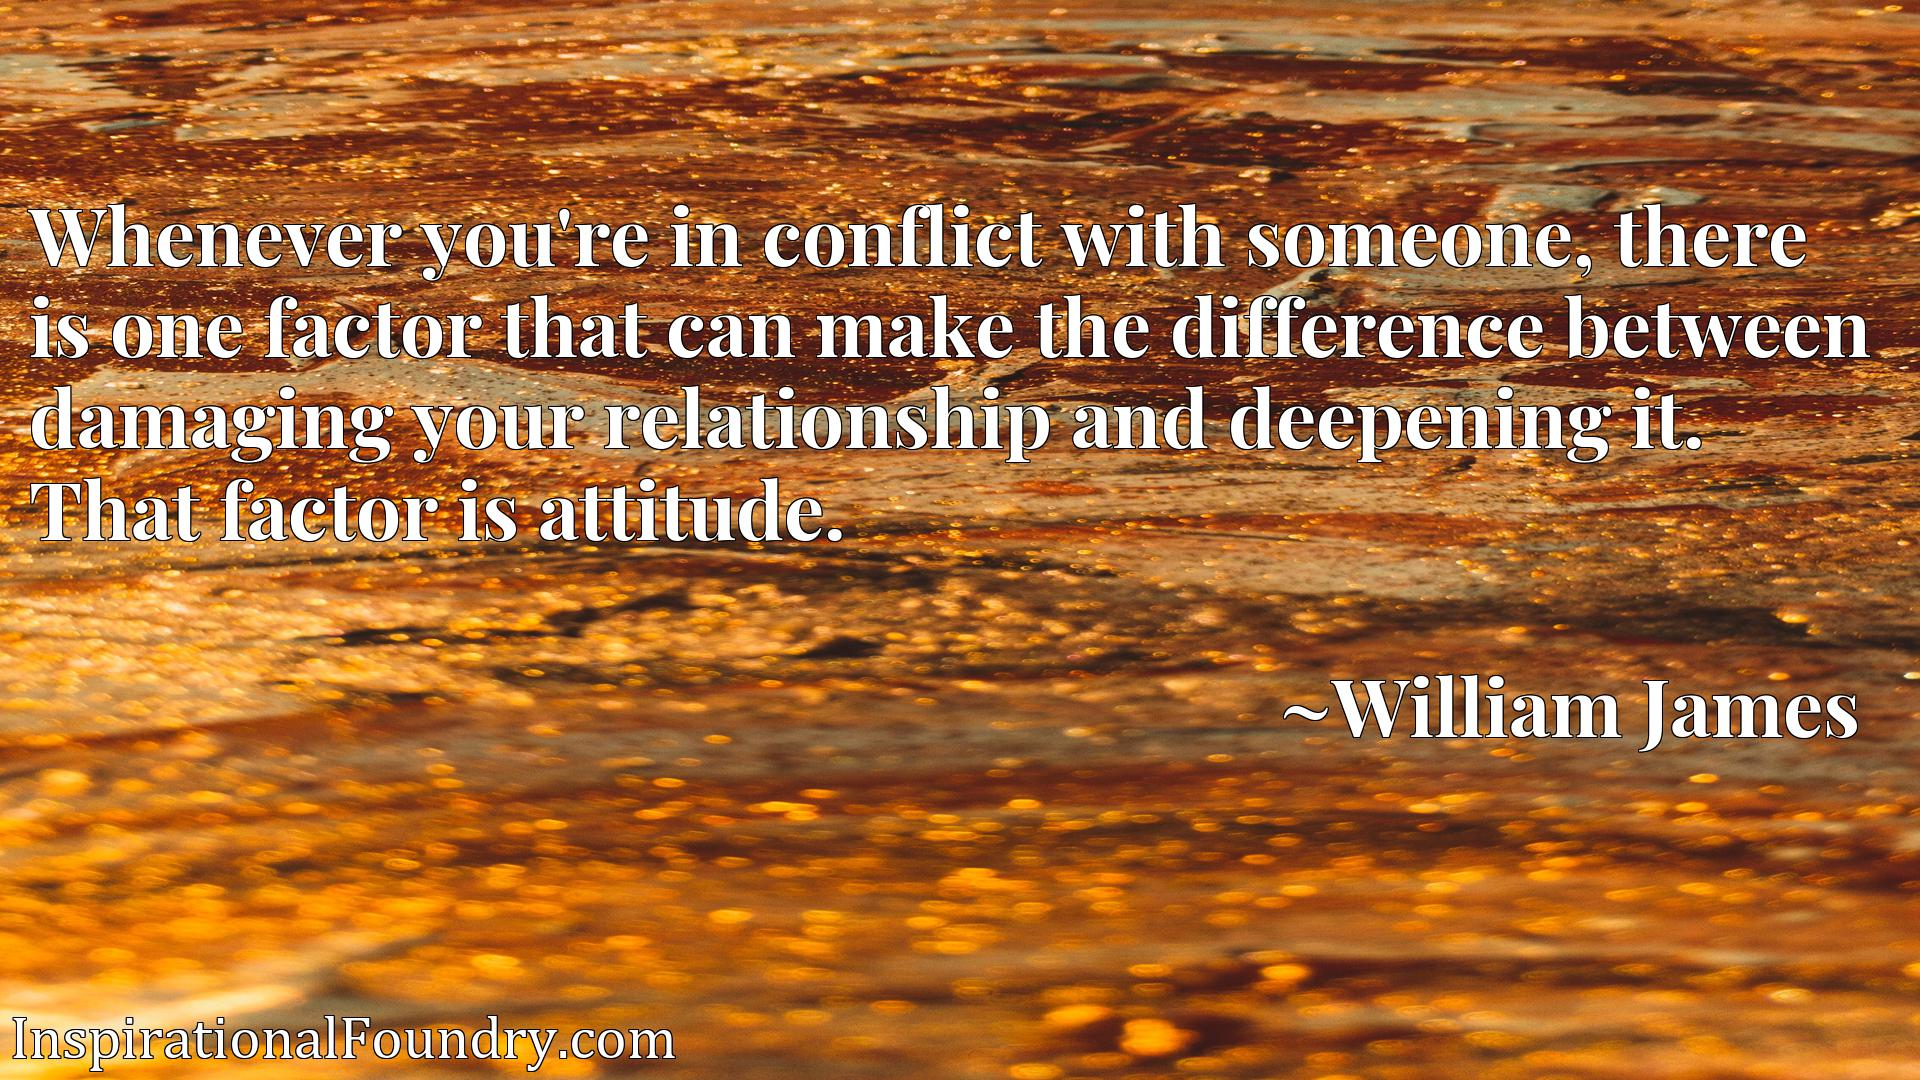 Whenever you're in conflict with someone, there is one factor that can make the difference between damaging your relationship and deepening it. That factor is attitude.